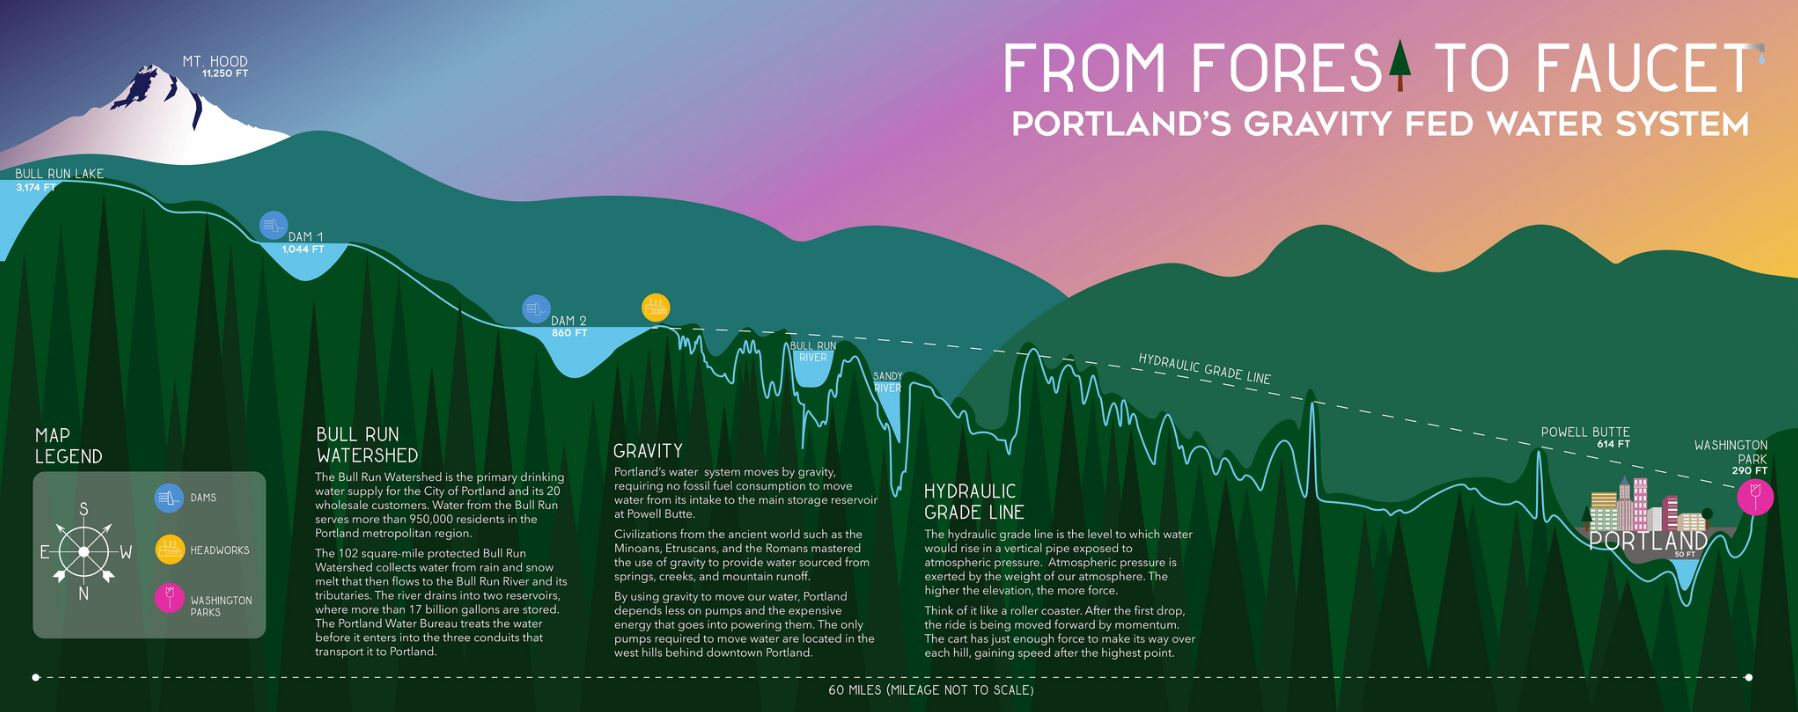 art and infrastructure student artists bring the story of portlands water system to life - Roof Life Of Oregon